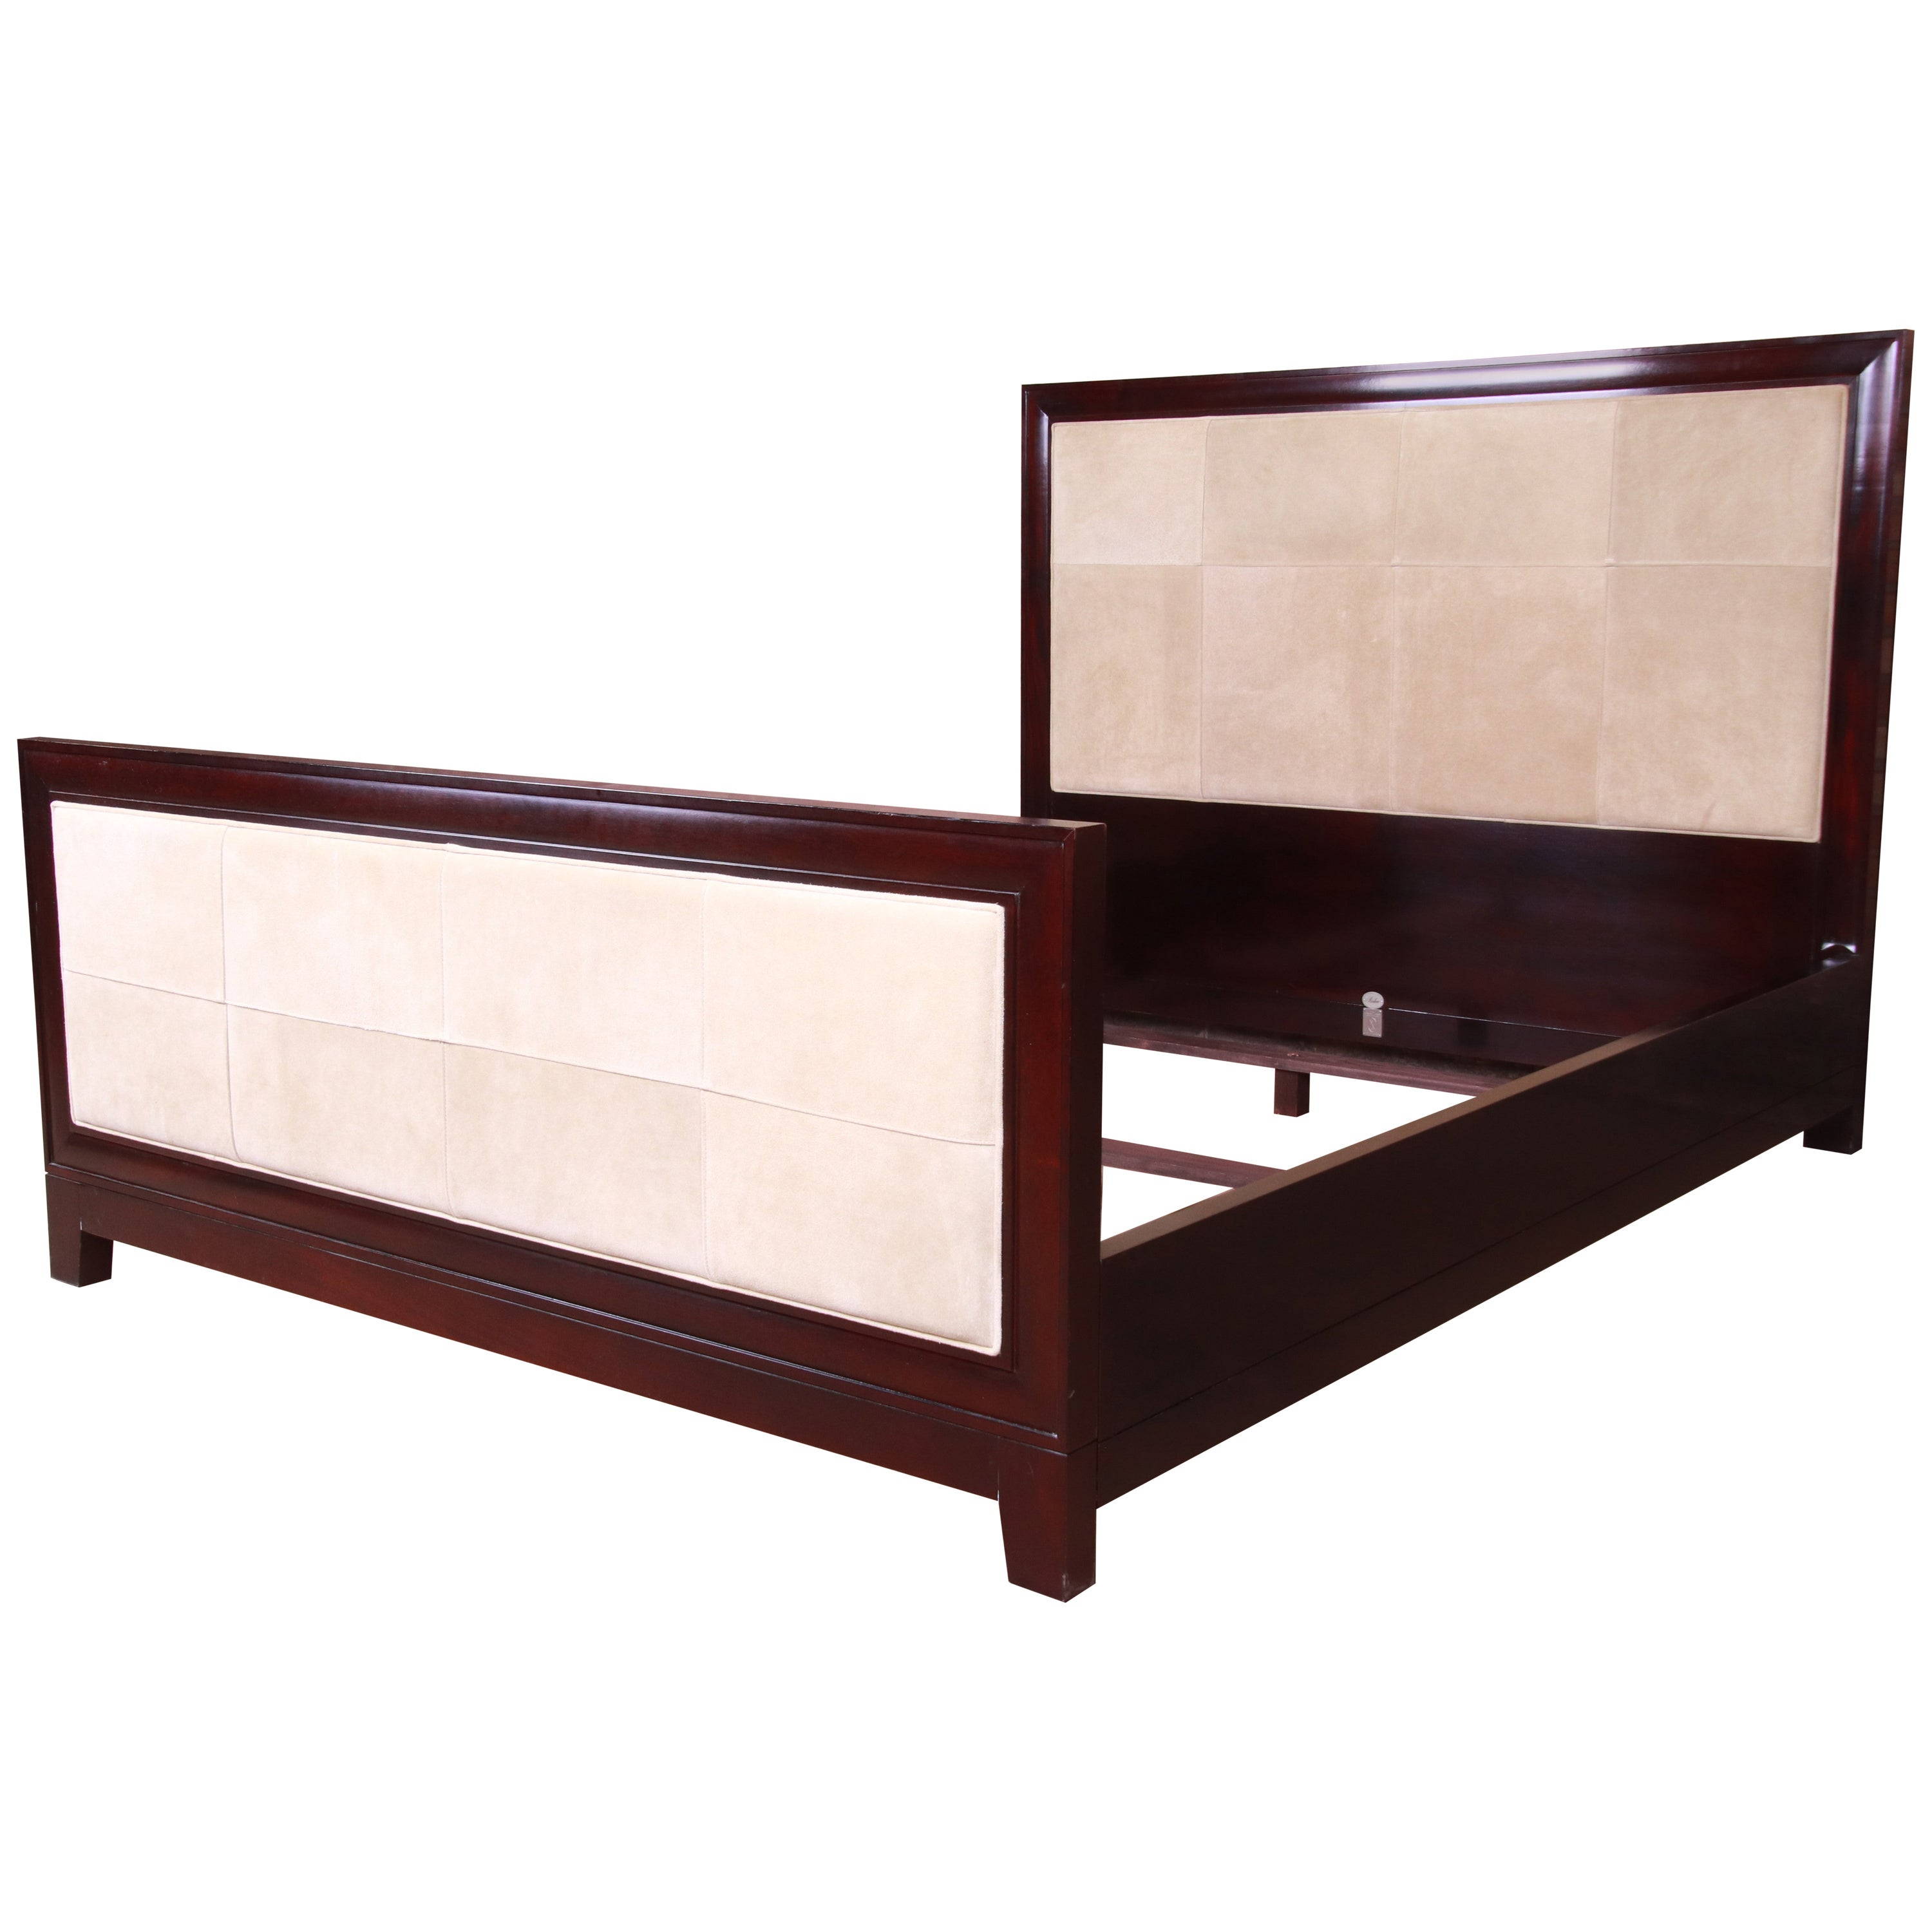 Barbara Barry for Baker Modern Mahogany and Suede Queen Bed